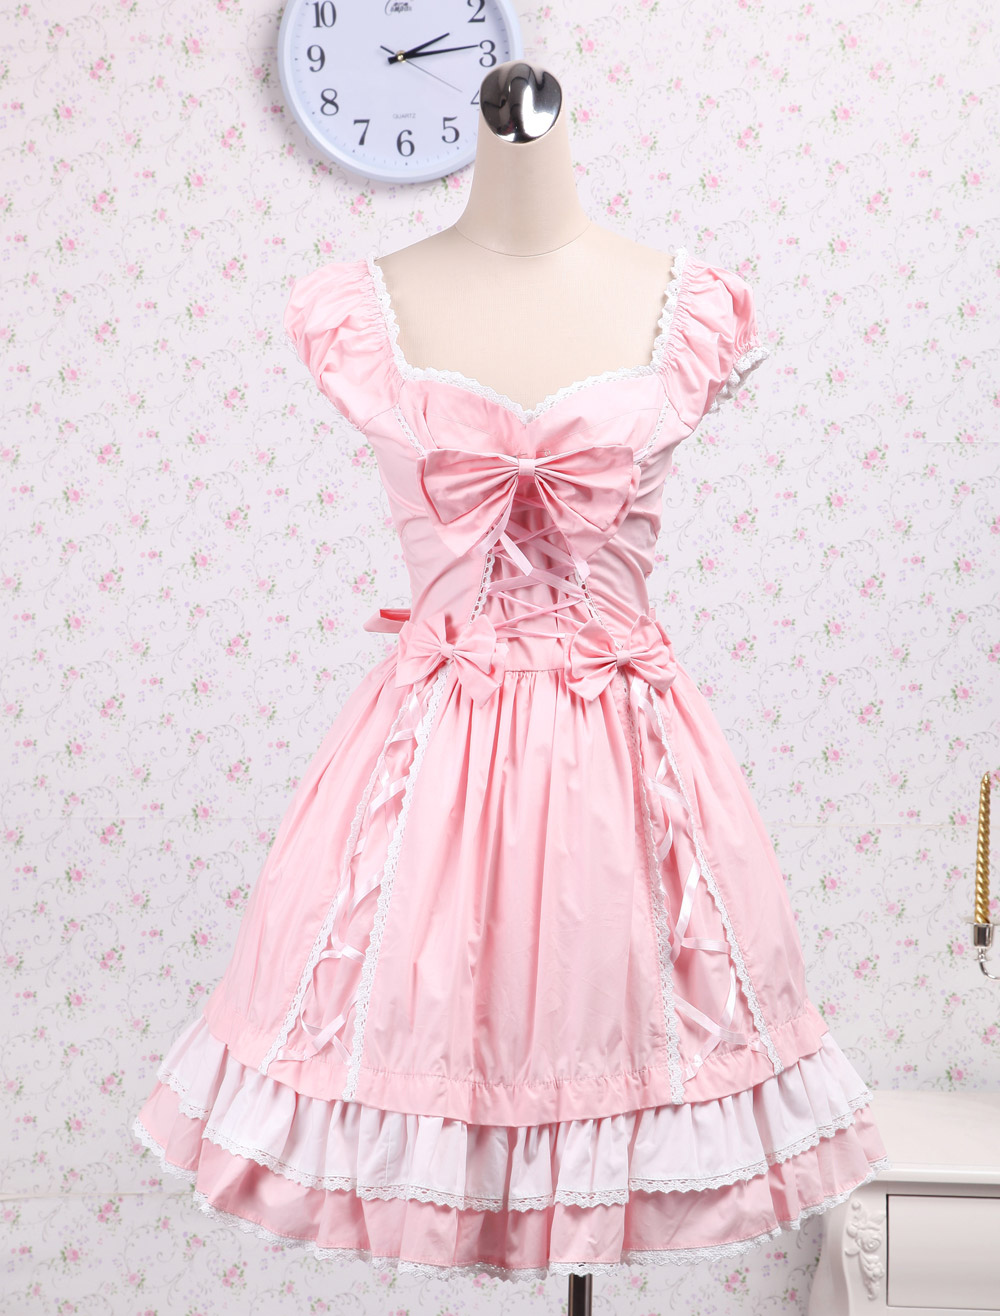 Pink Bow and Ribbon Sweet Lolita Dress